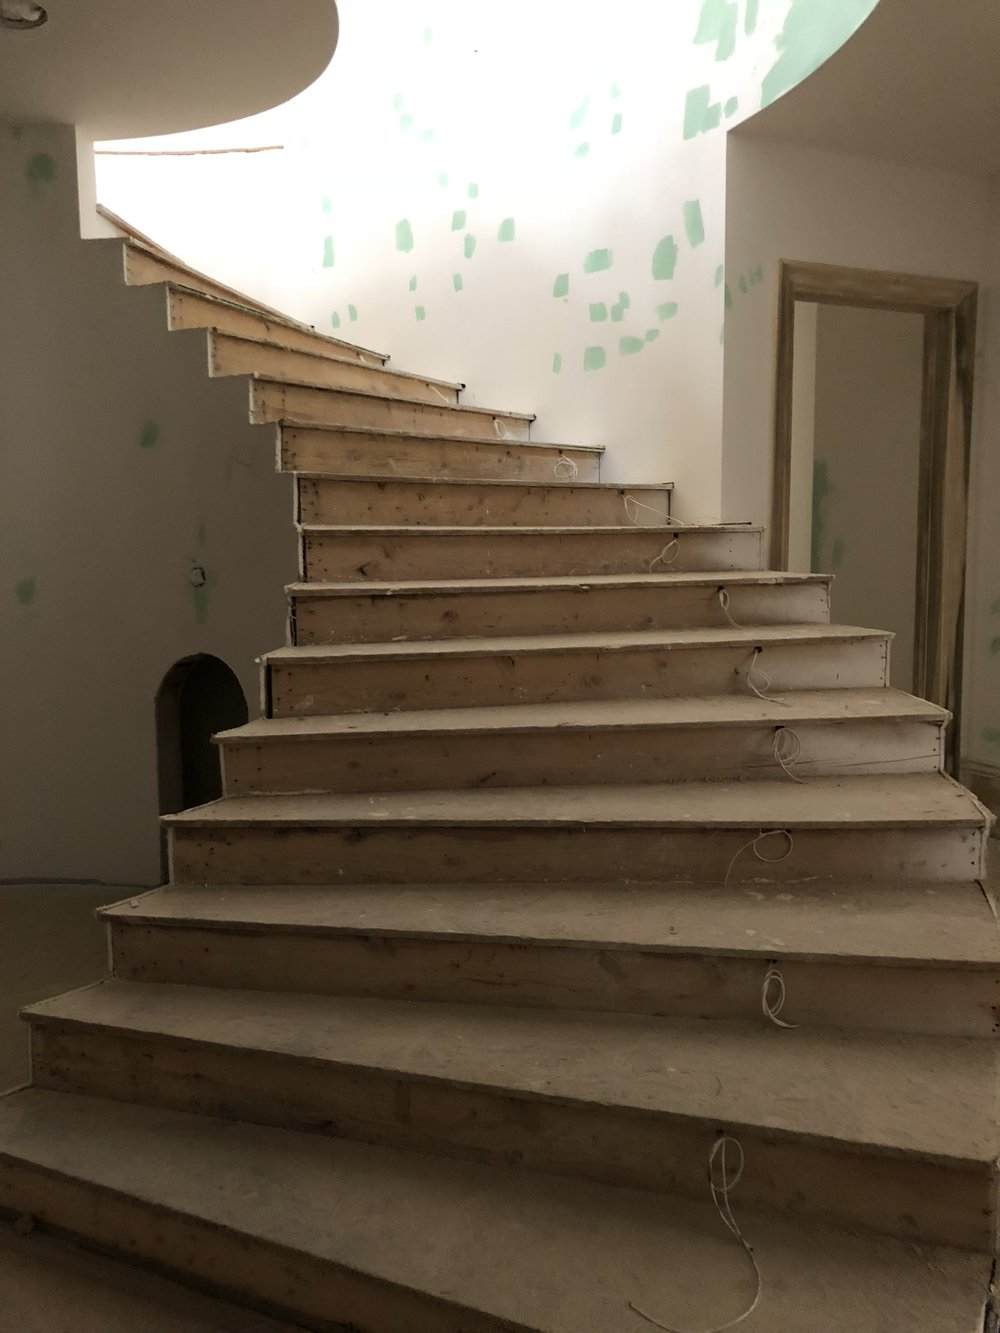 French Revival Project Sneak Peek At The Stairs And Basement How To Wire A Idea Wiring Notice All Wires On Right Side Of Will Have Lighting Going Up Down It Was Definite Must For Our Clients